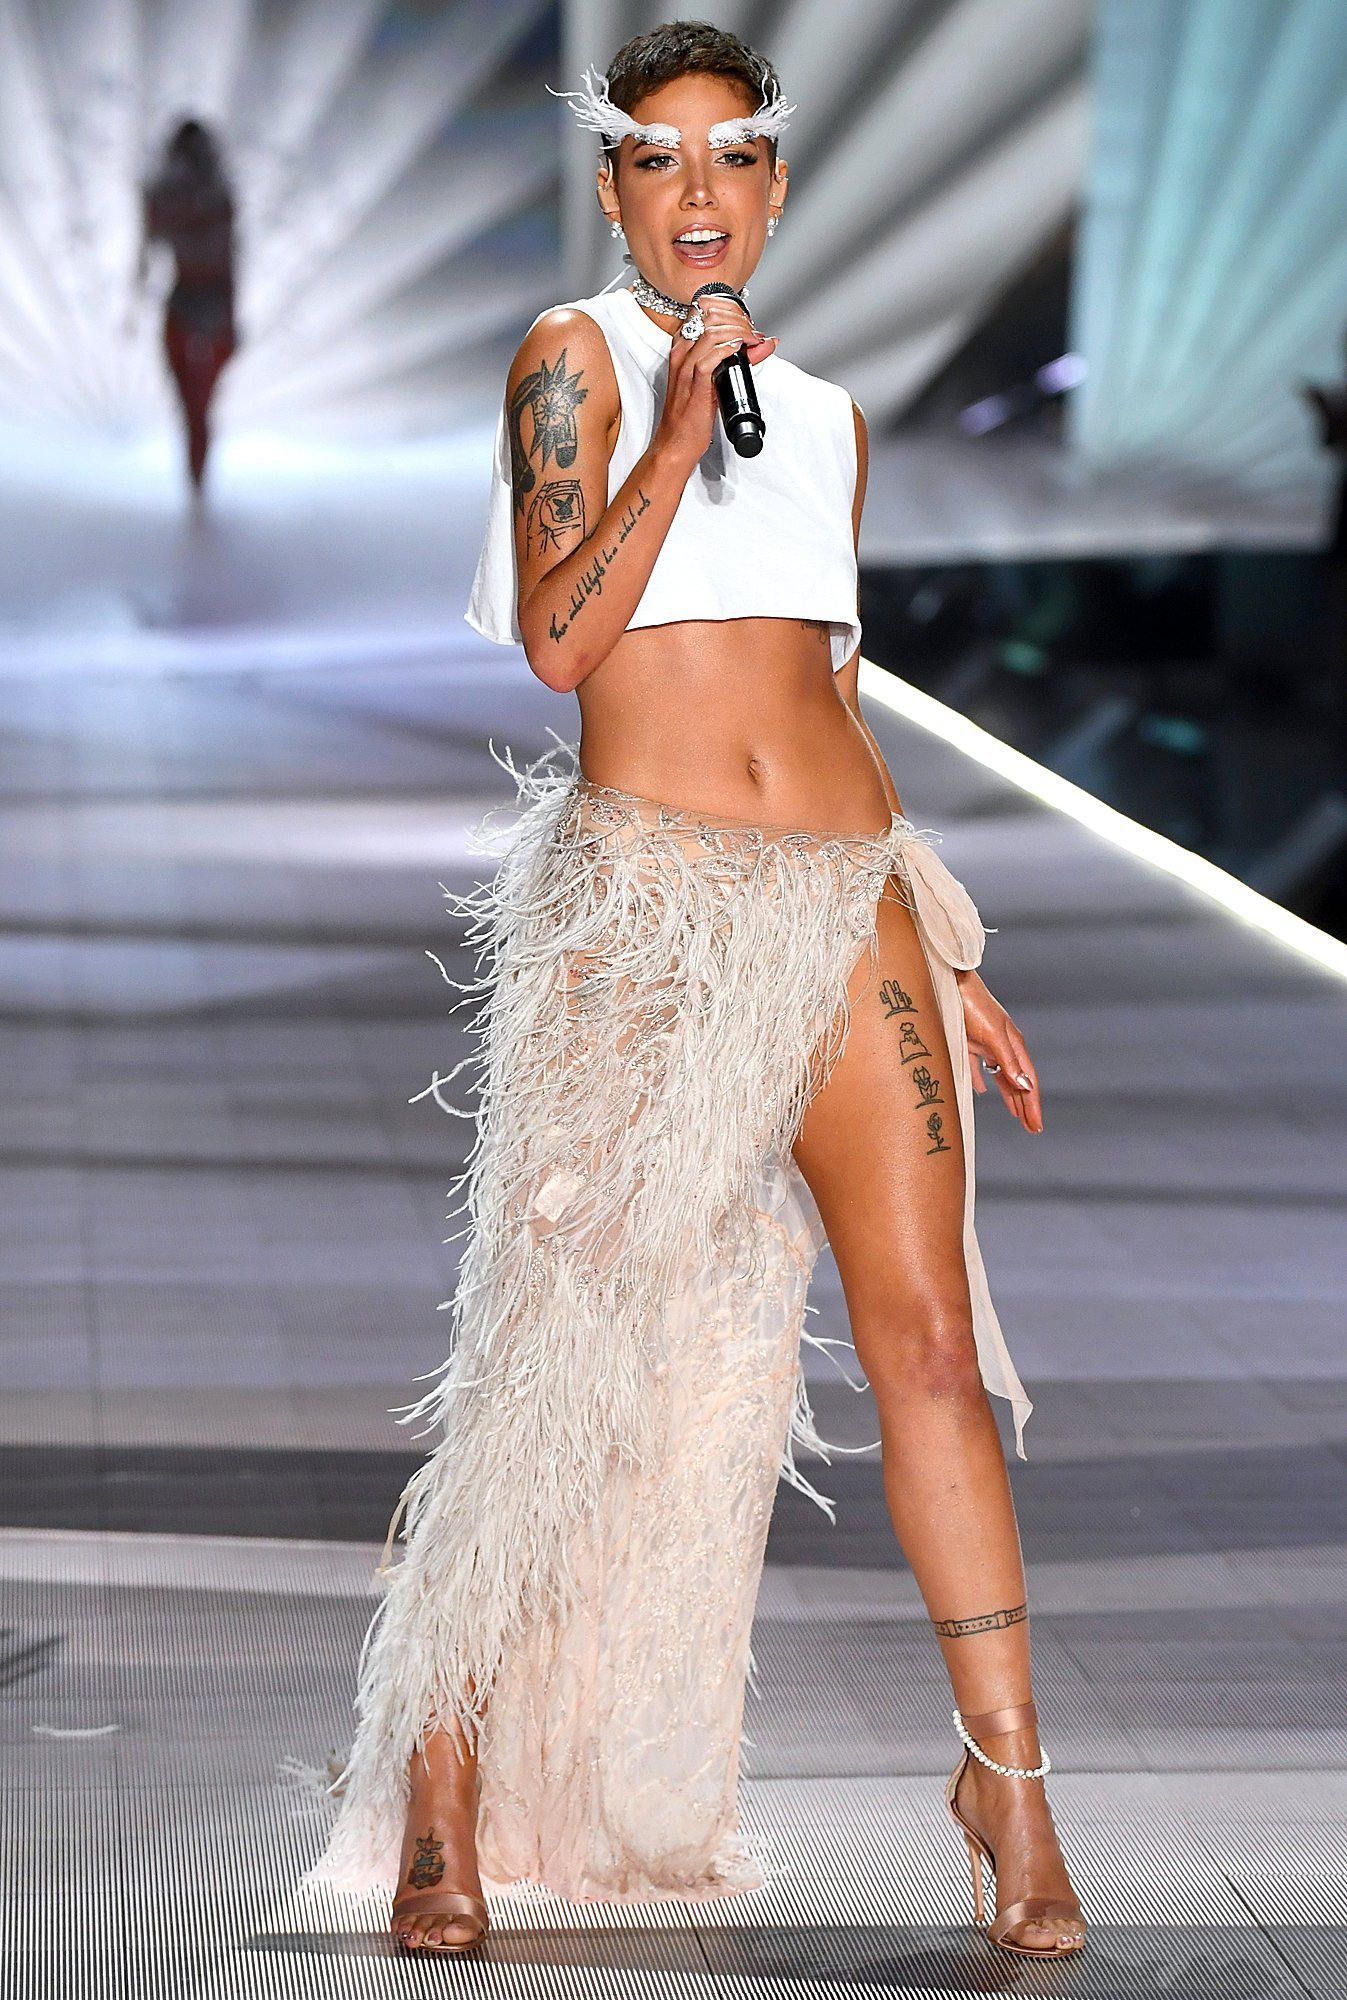 Halsey Has 'No Tolerance' for Lack of Diversity After Victoria's Secret Fashion Show Airs